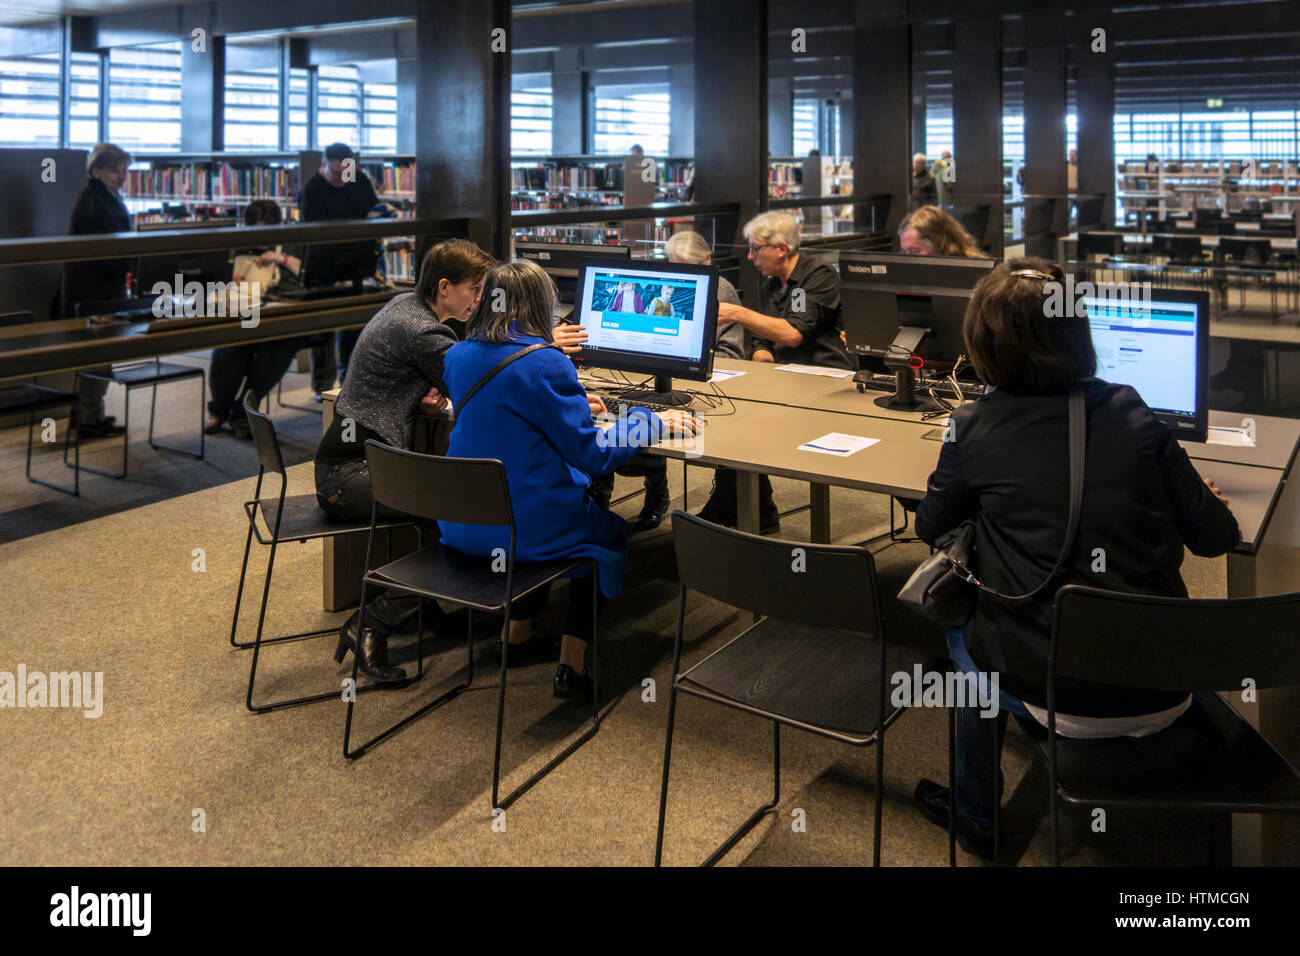 Visitors watching computer screens at De Krook, new public library in the city center of Ghent, East Flanders, Belgium - Stock Image